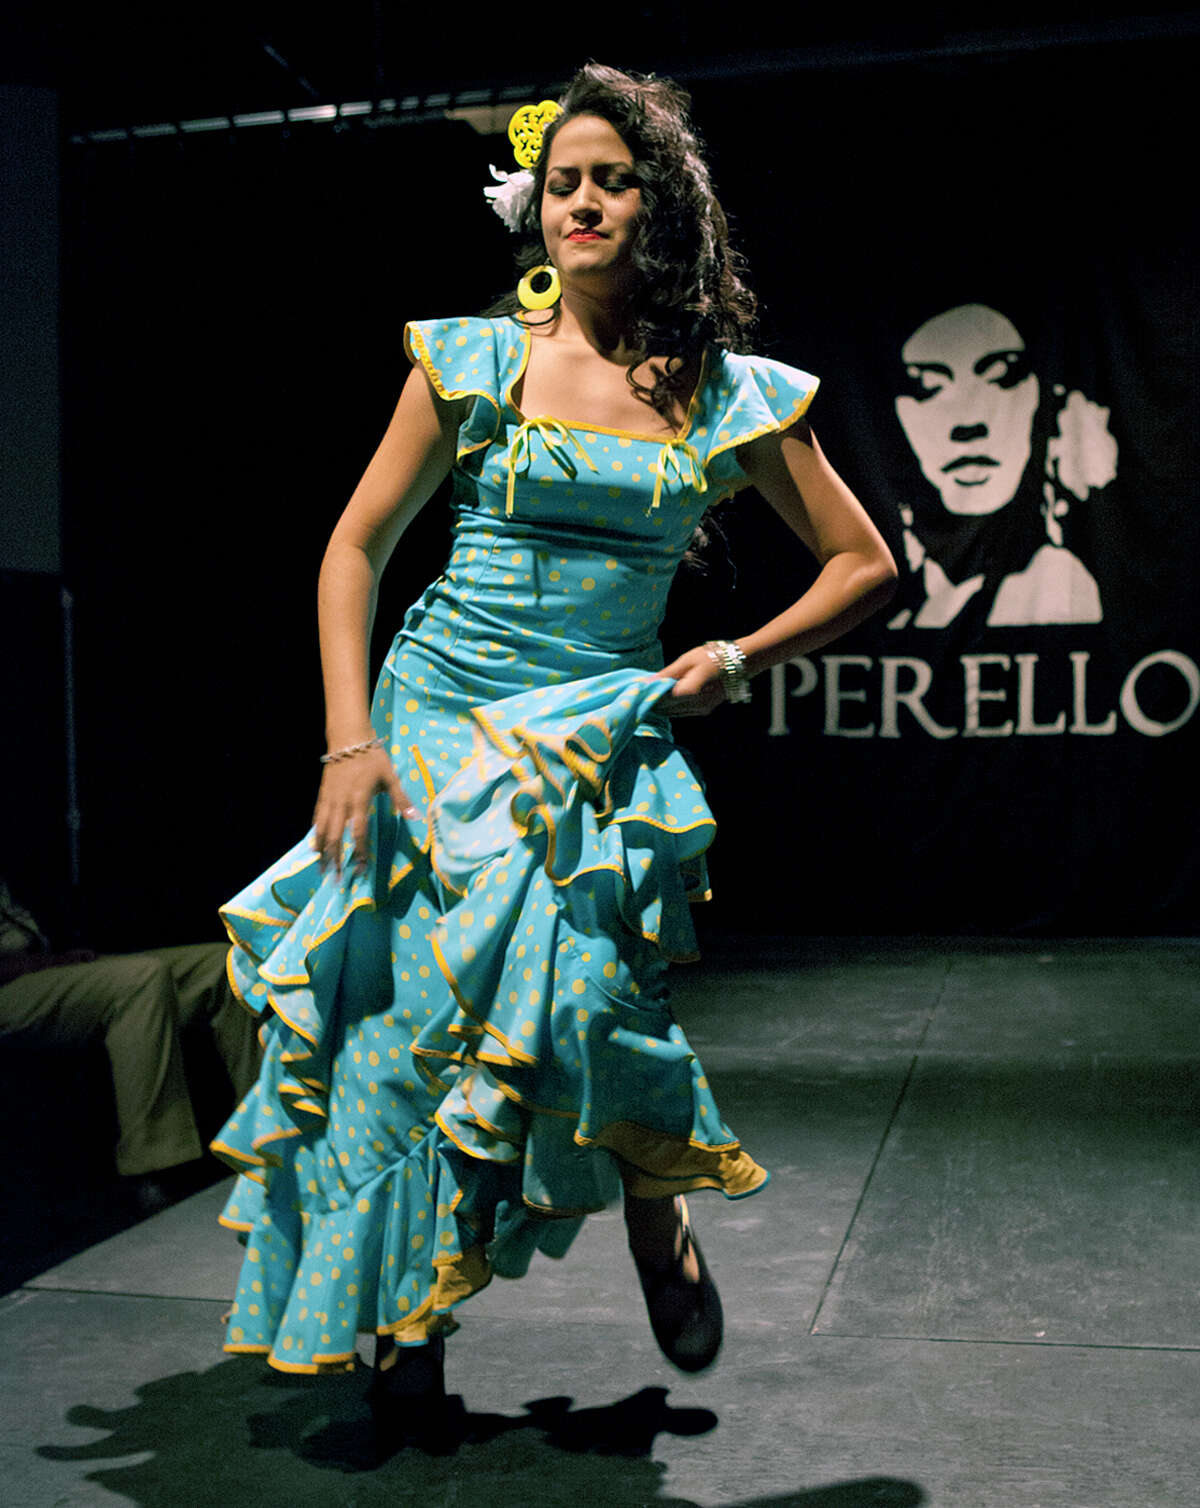 Espinosa performs a flamenco dance on the runway at the All Flamenco Fashion Show of designs by Lisa Perello Trajes de Flamenco in partnership with the ALAS Say Si's Resident Youth Theatre Company at the Say Si theater.